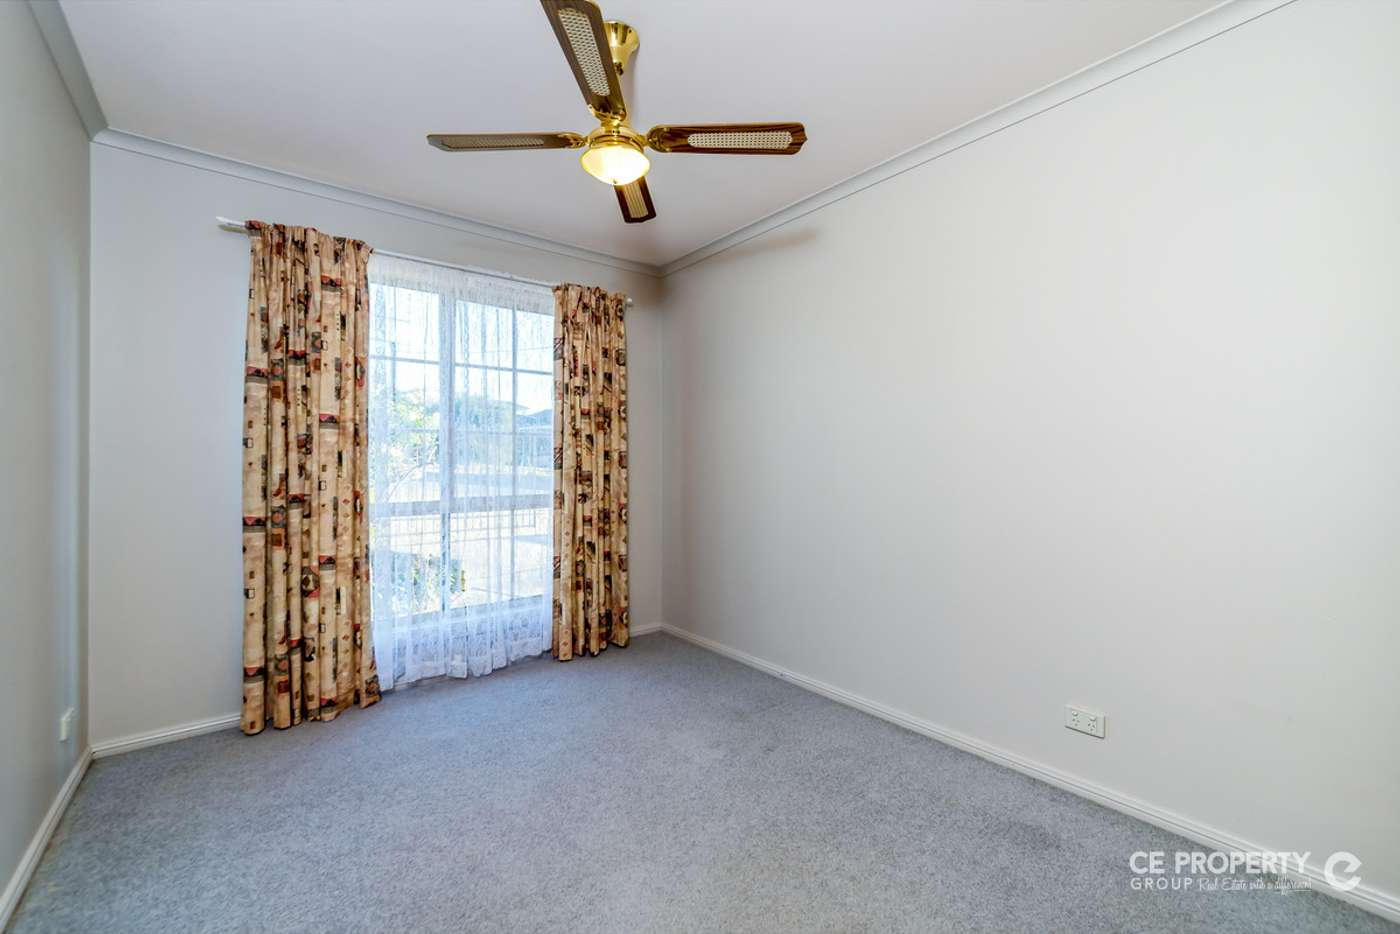 Sixth view of Homely house listing, 5 North Terrace, Mannum SA 5238